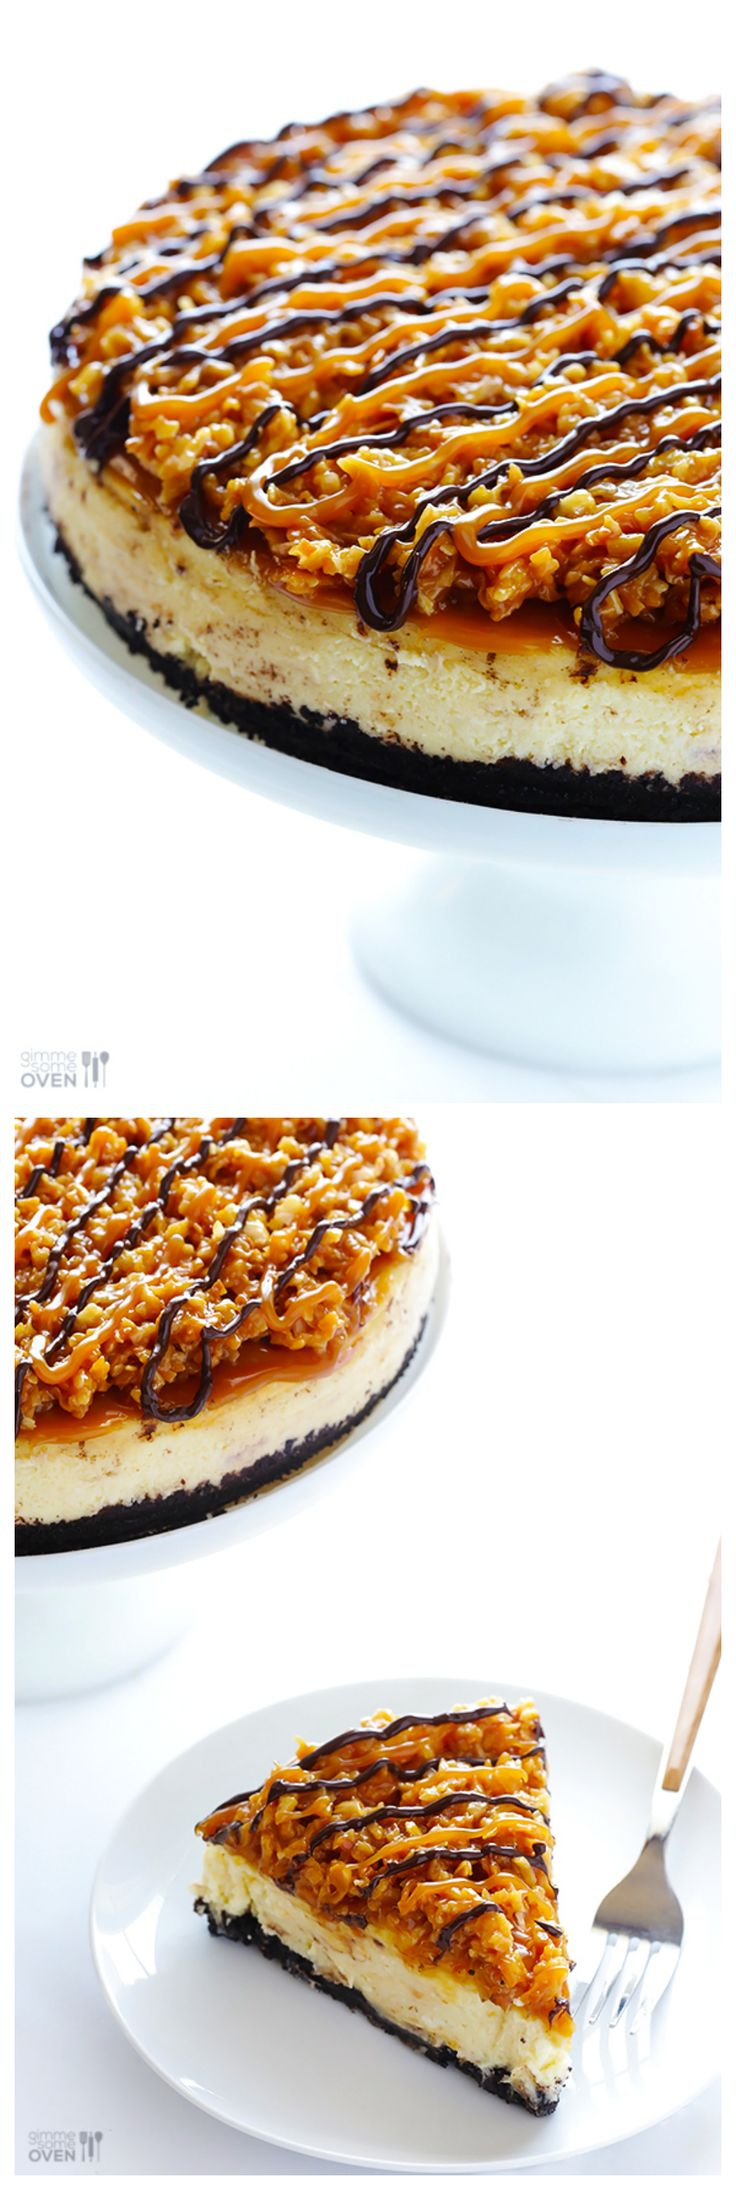 Samoa Cheesecake (Caramel DeLite Cheesecake) -- inspired by the Girl Scouts cookies, and surprisingly easy to make! | gimmesomeoven.com #dessert